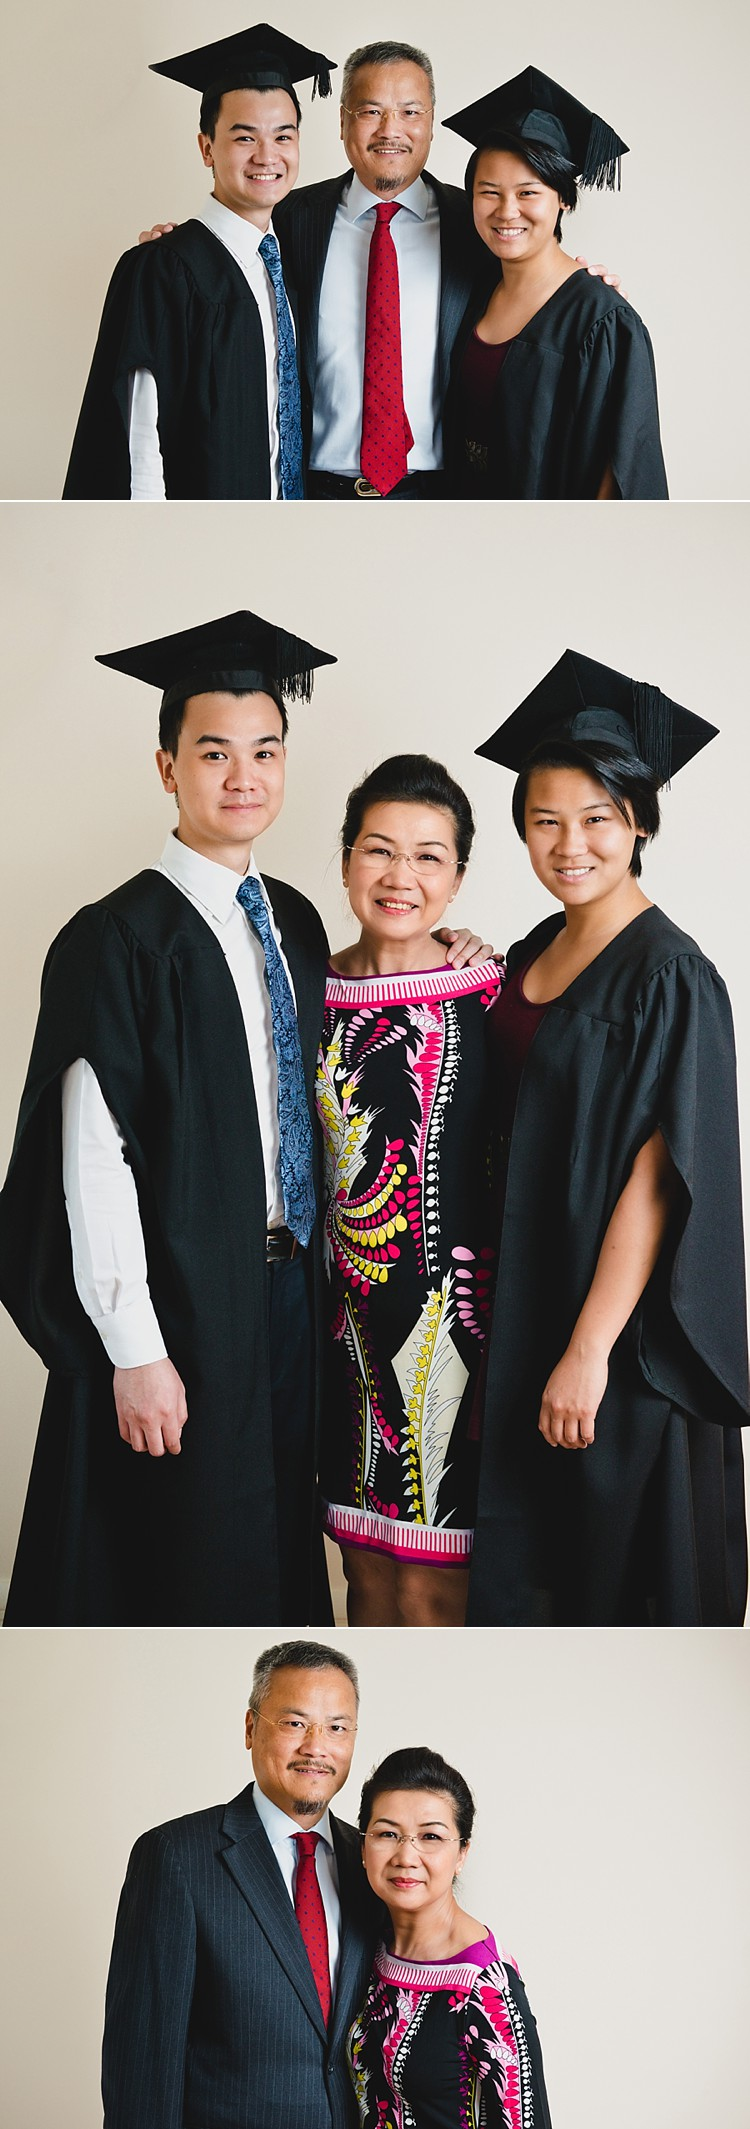 traditional-graduation-portraits-family-london-lily-sawyer-photo